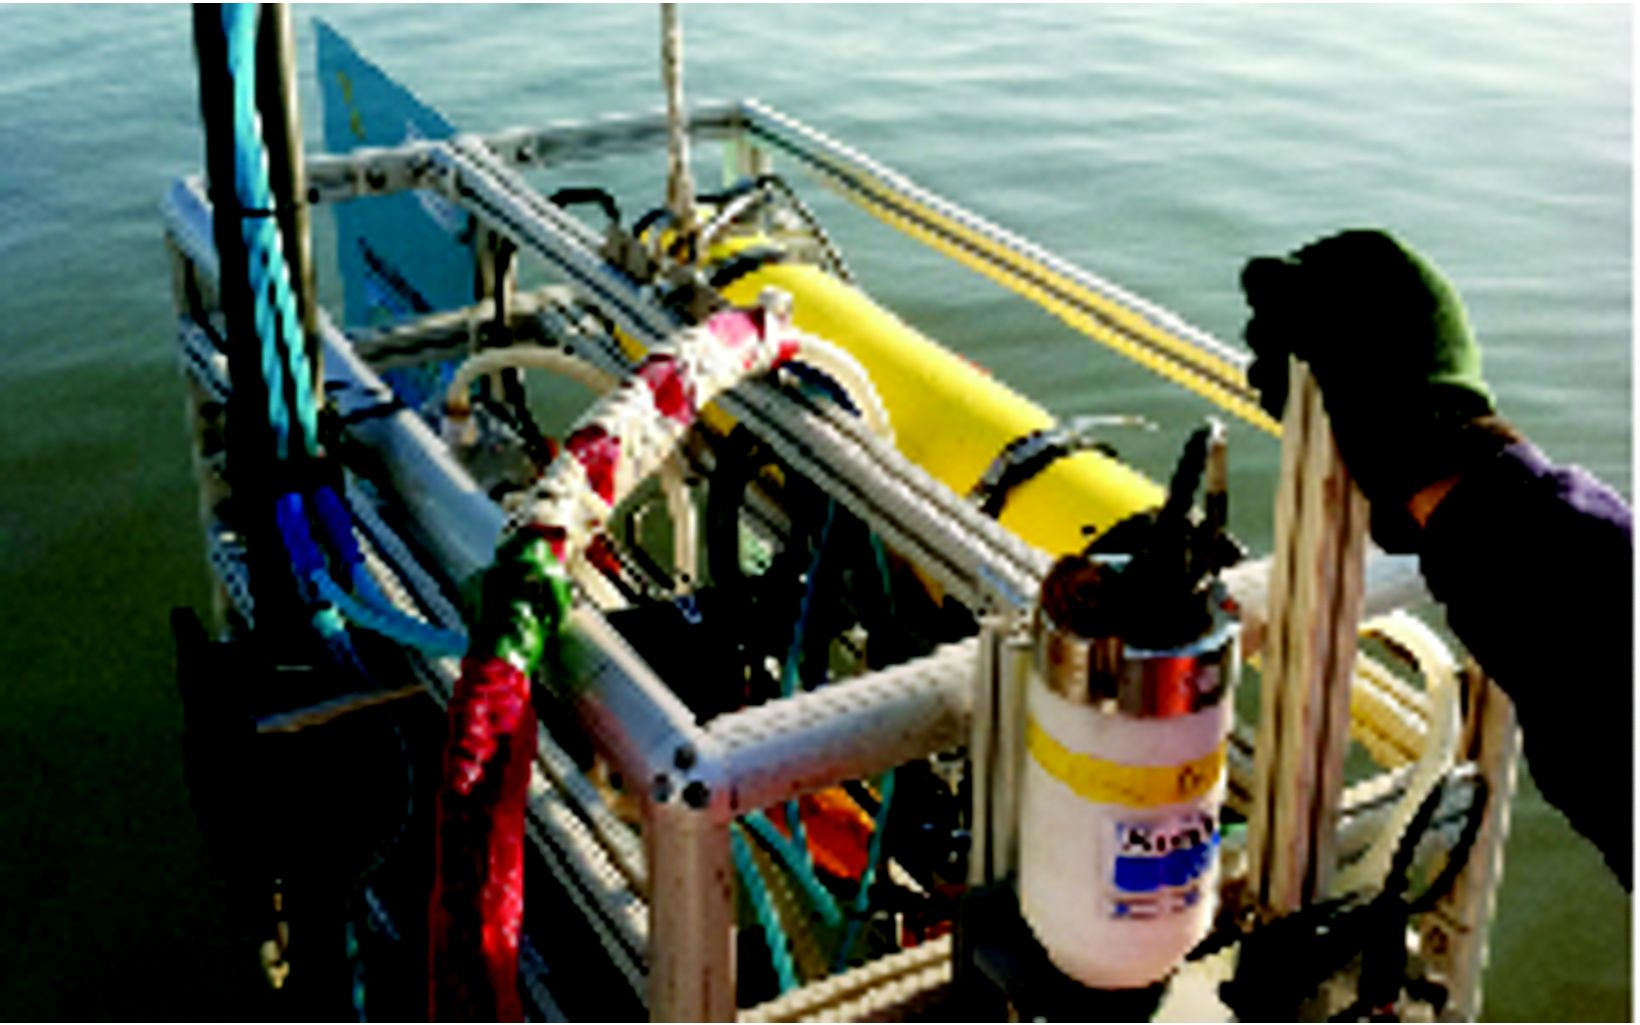 This piece of equipment has several sensors mounted to it that measure water quality characteristics such as temperature, salinity, pH, clarity and particulates.